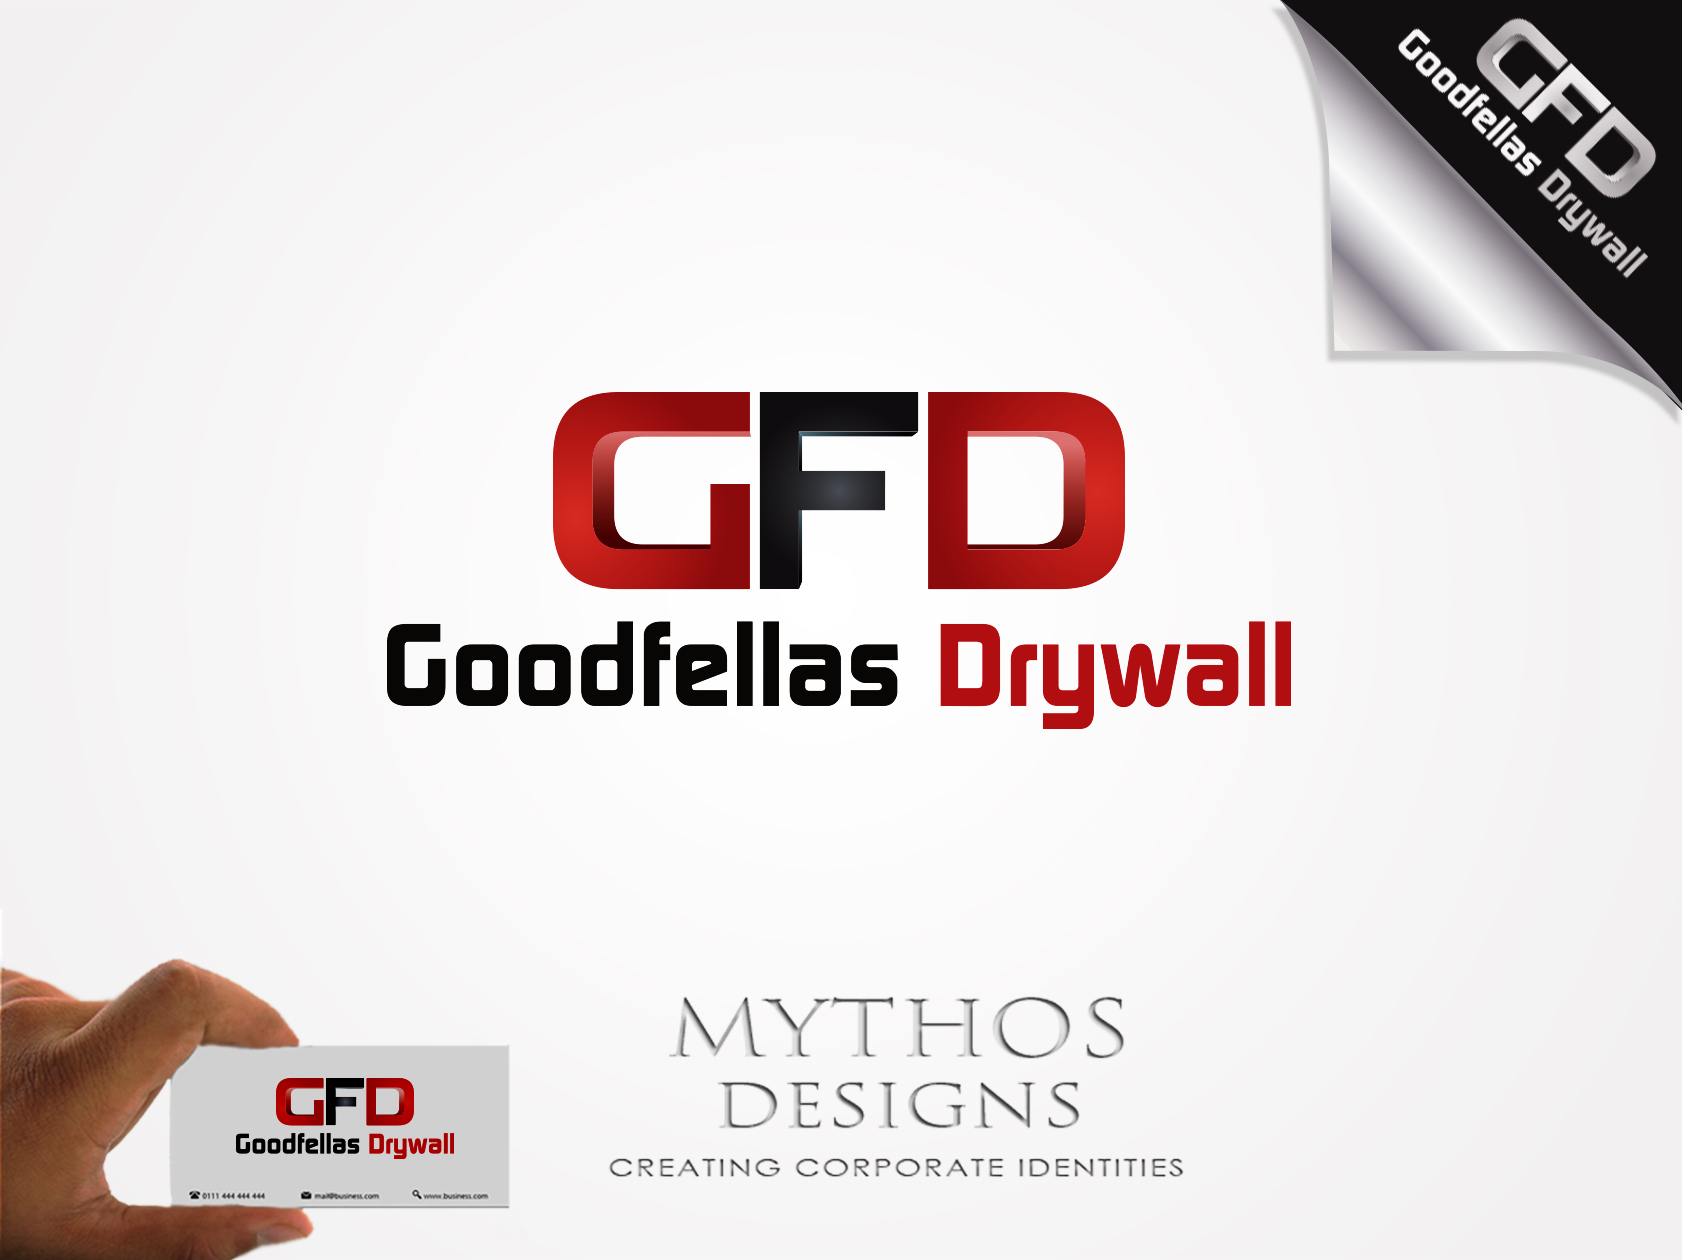 Logo Design by Mythos Designs - Entry No. 185 in the Logo Design Contest Creative Logo Design for Goodfellas Drywall.